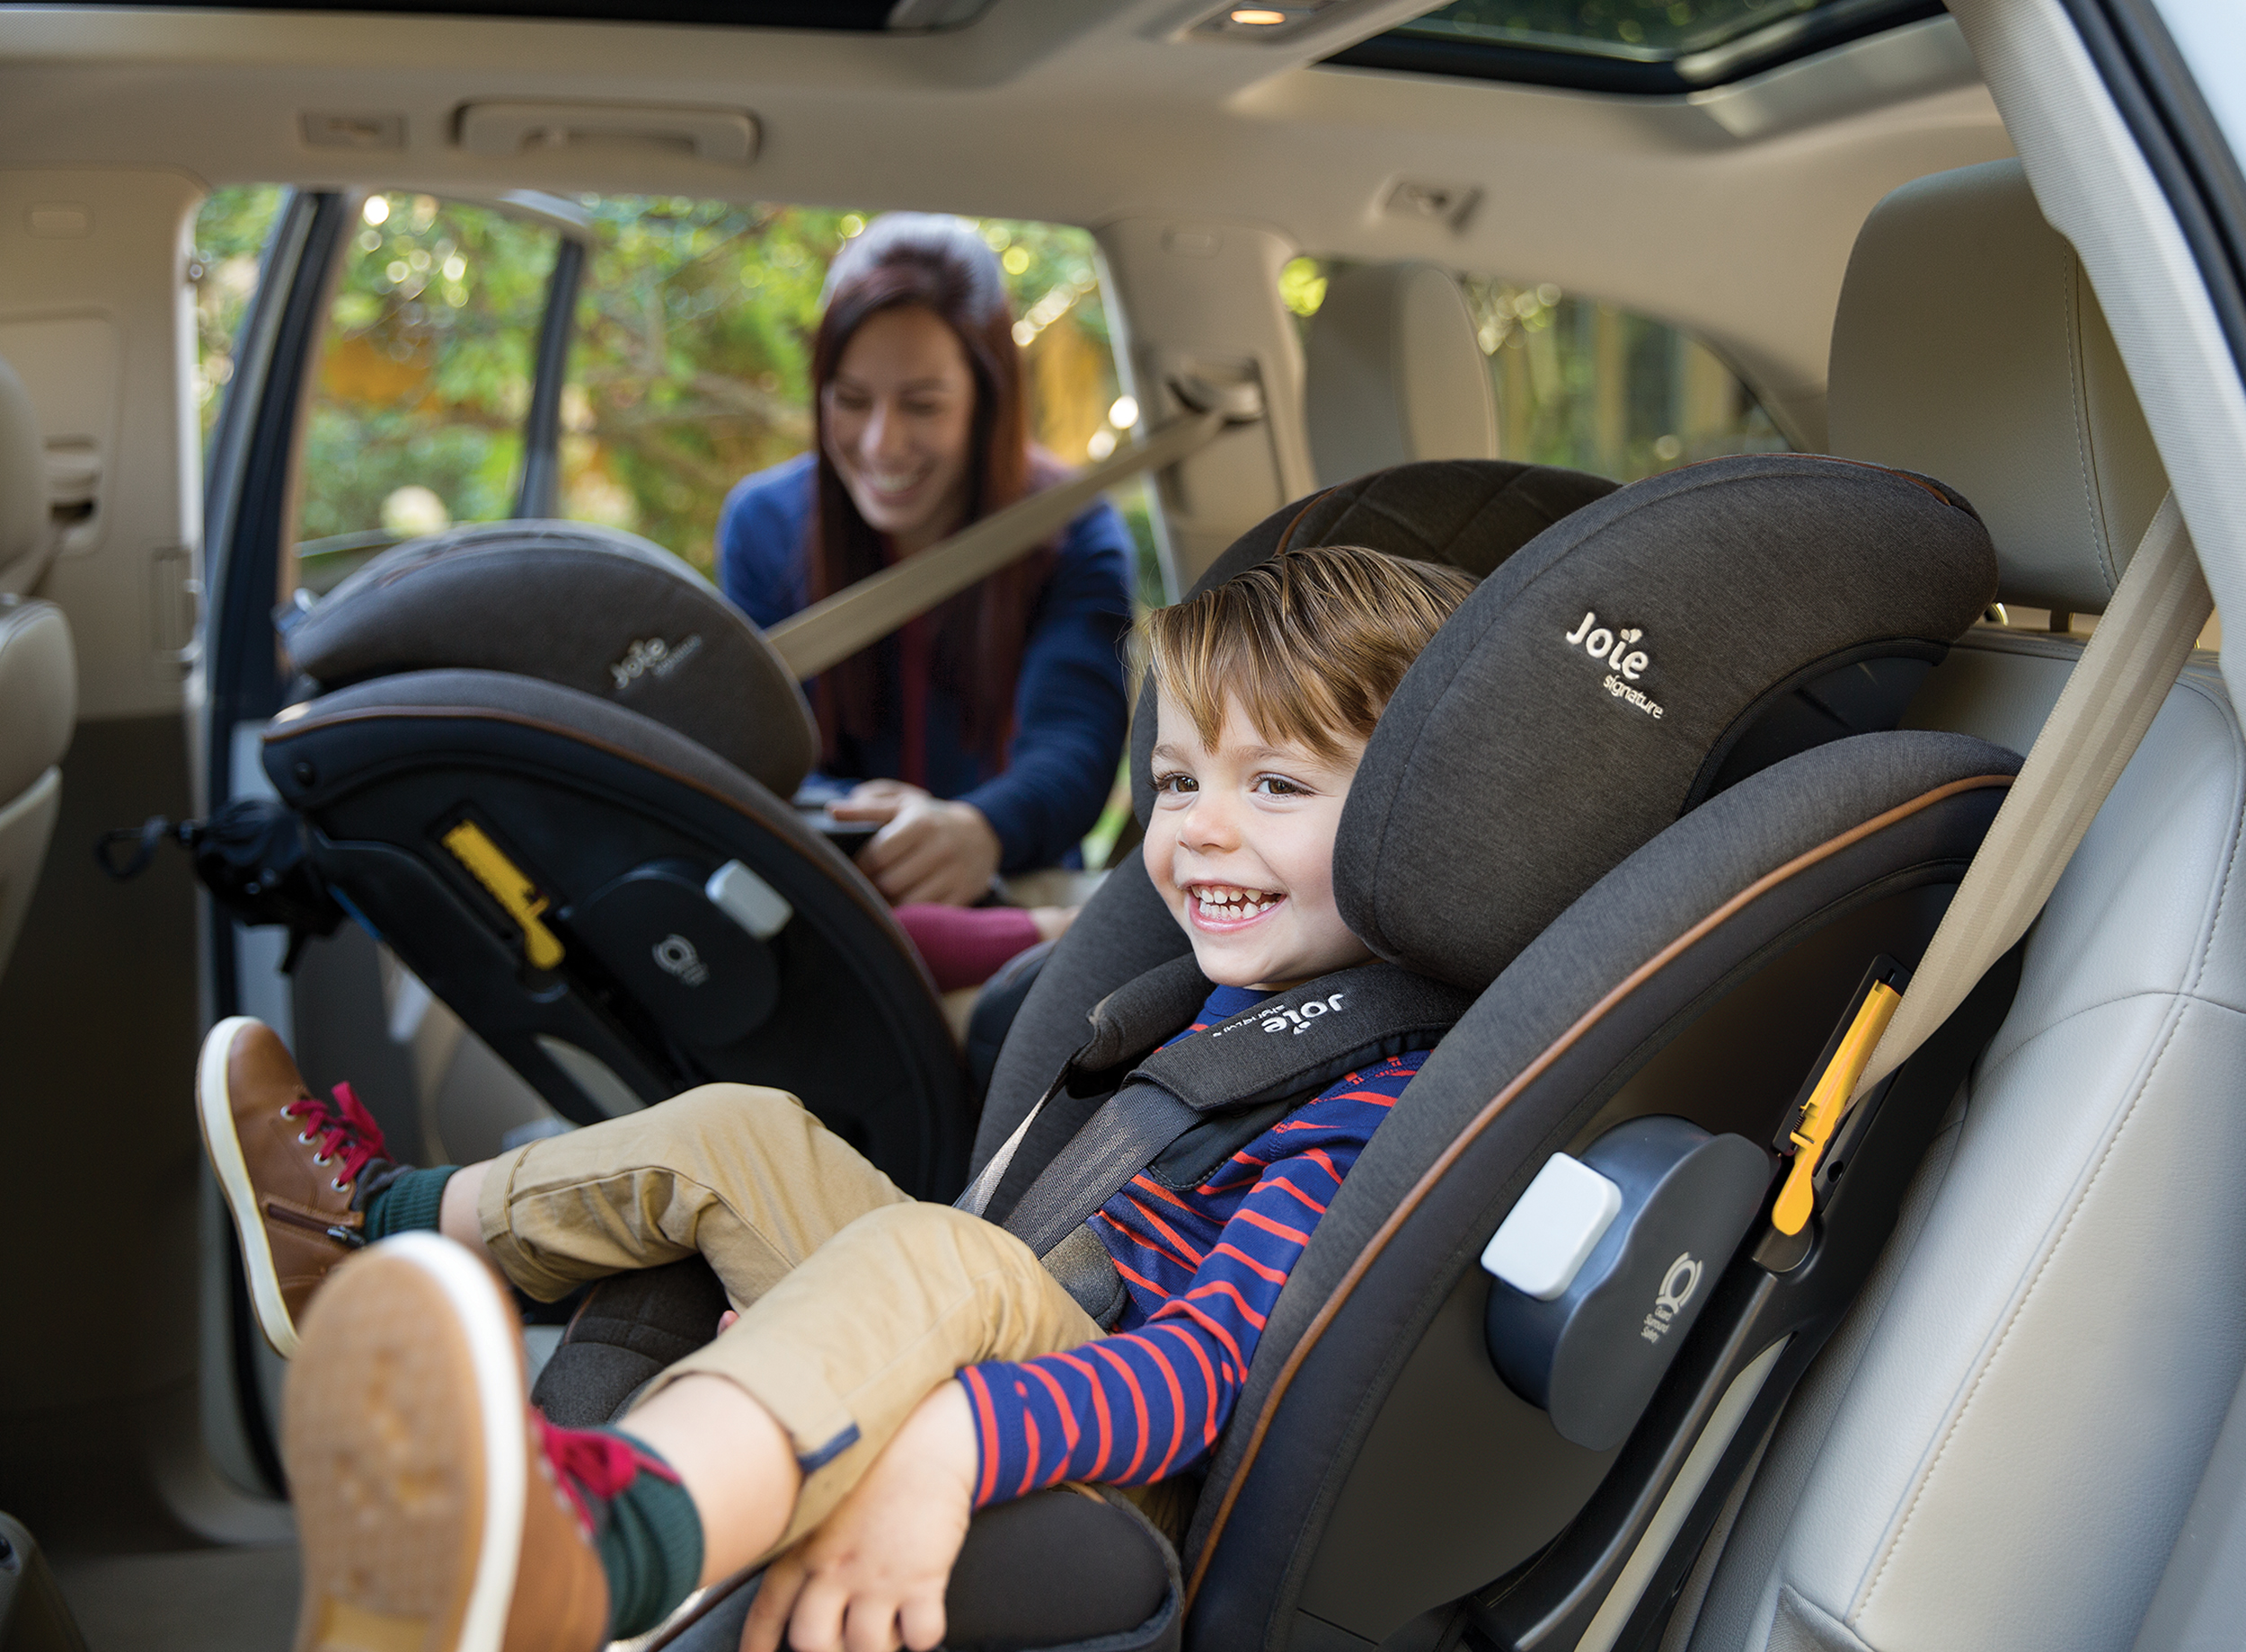 Baby Car Seat For Sale Philippines I Travvel Signature Joie Australia Explore Joie